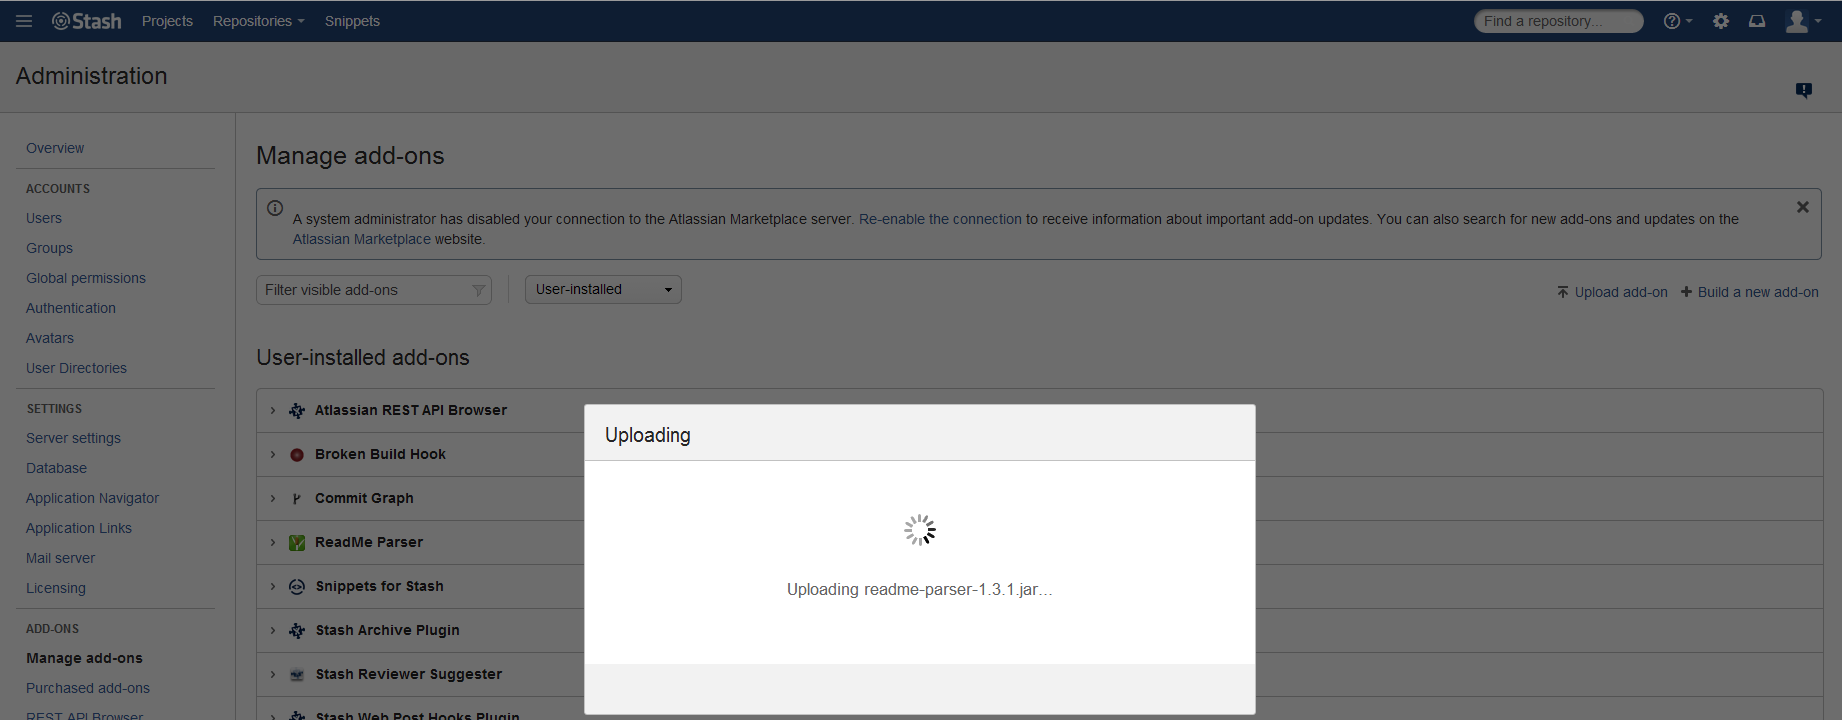 Updating add-ons by file upload hangs using UPM - Atlassian